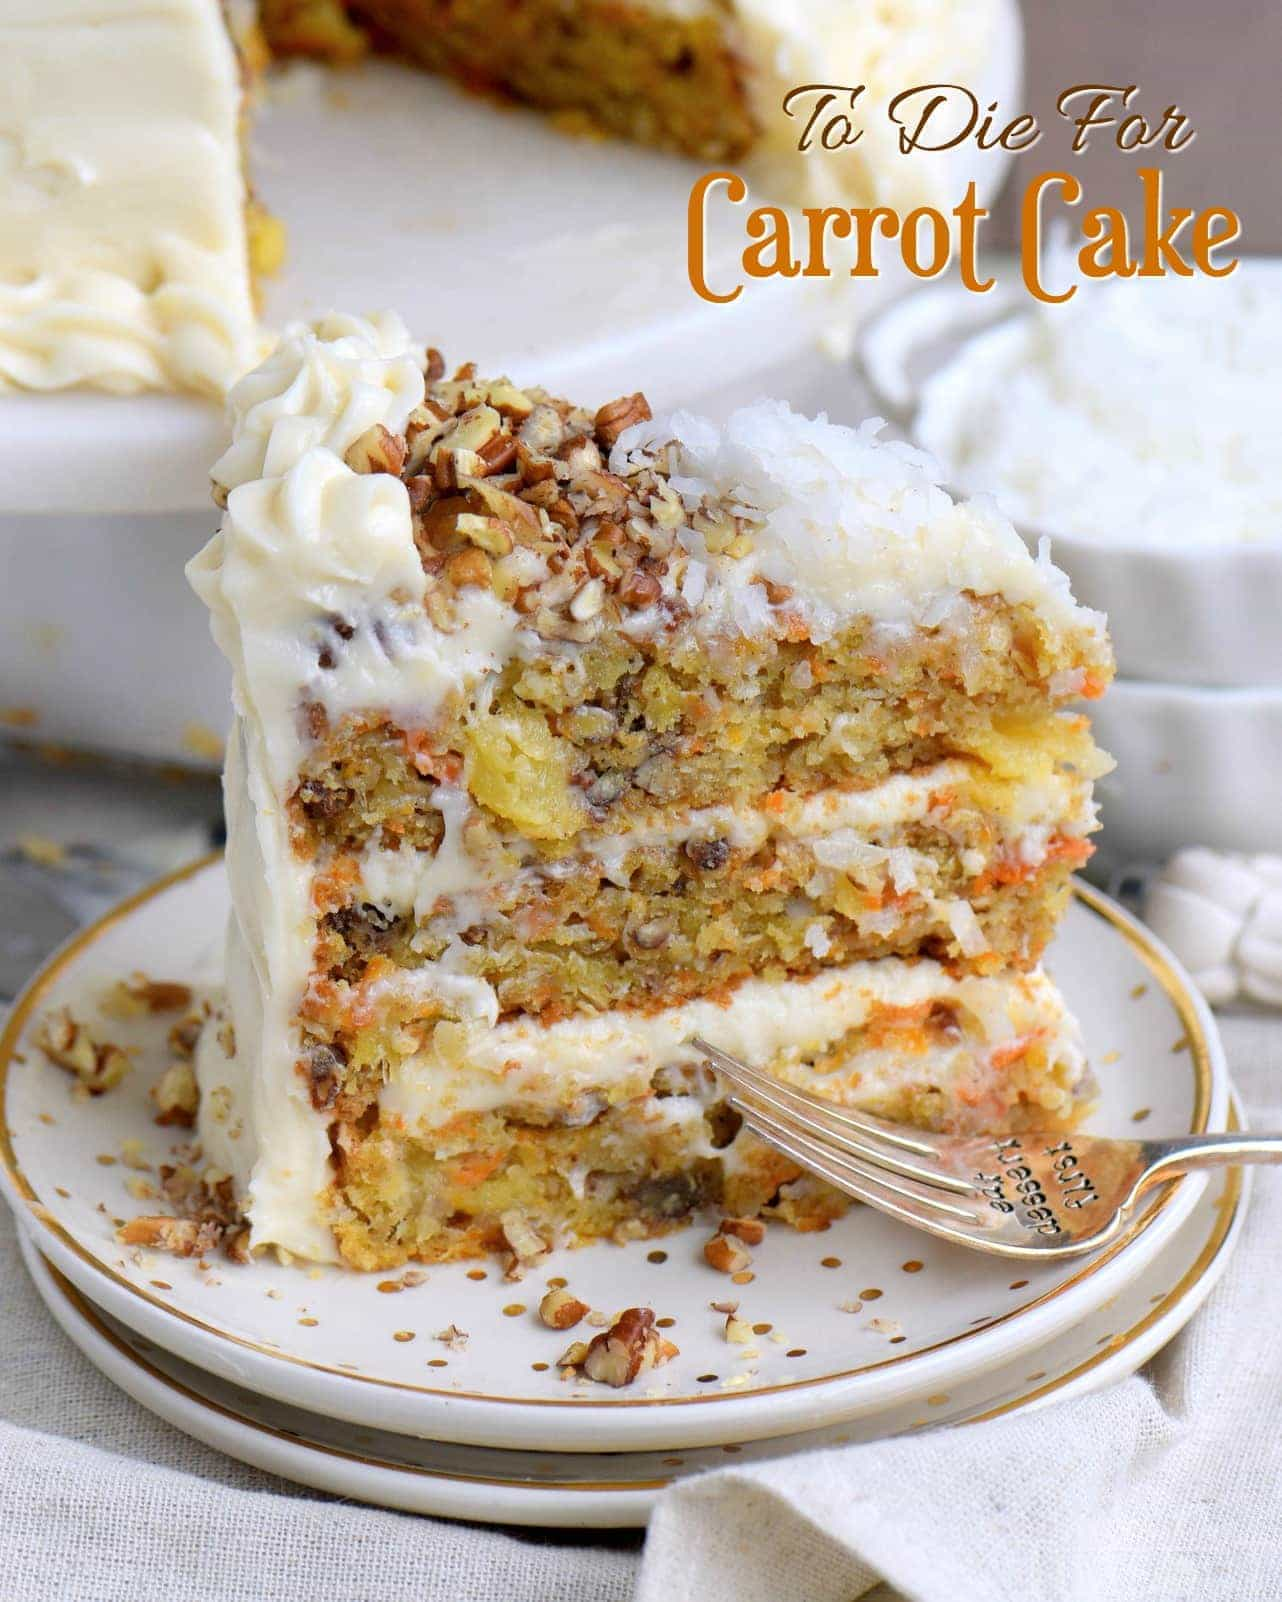 How To Make Homemade Icing For Carrot Cake